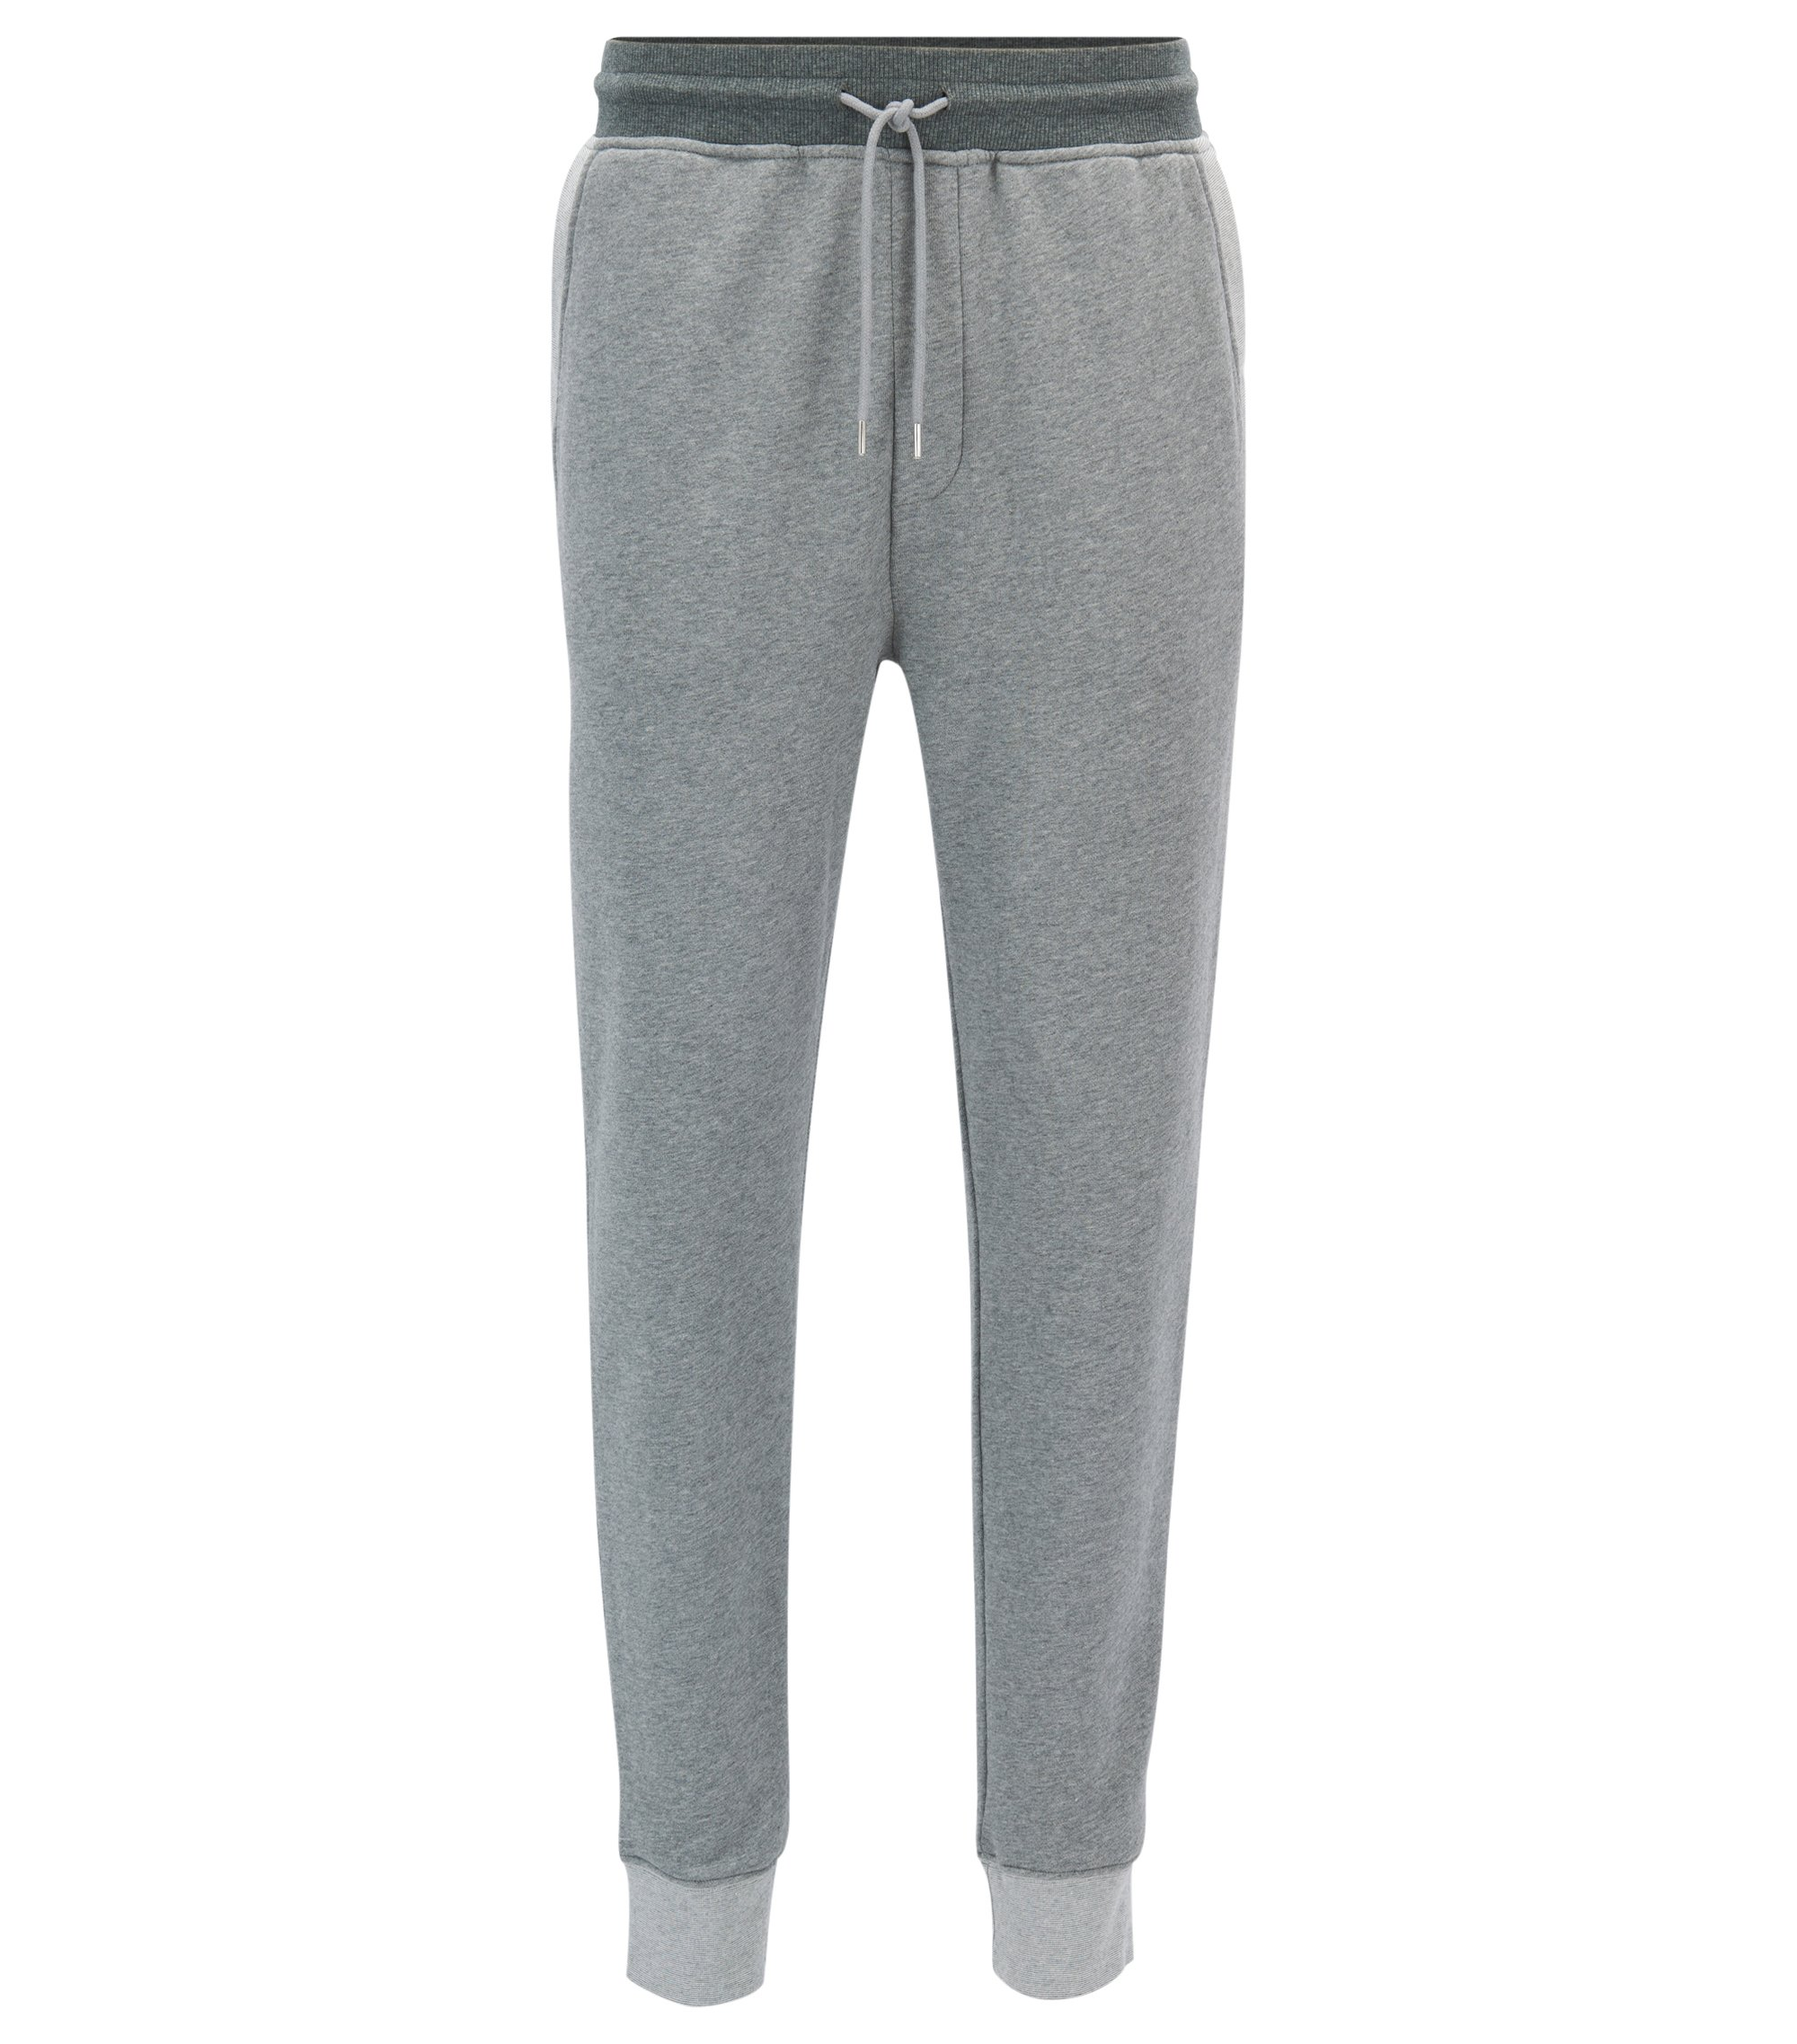 Pantalon de jogging Tapered Fit en molleton French Terry, Gris chiné